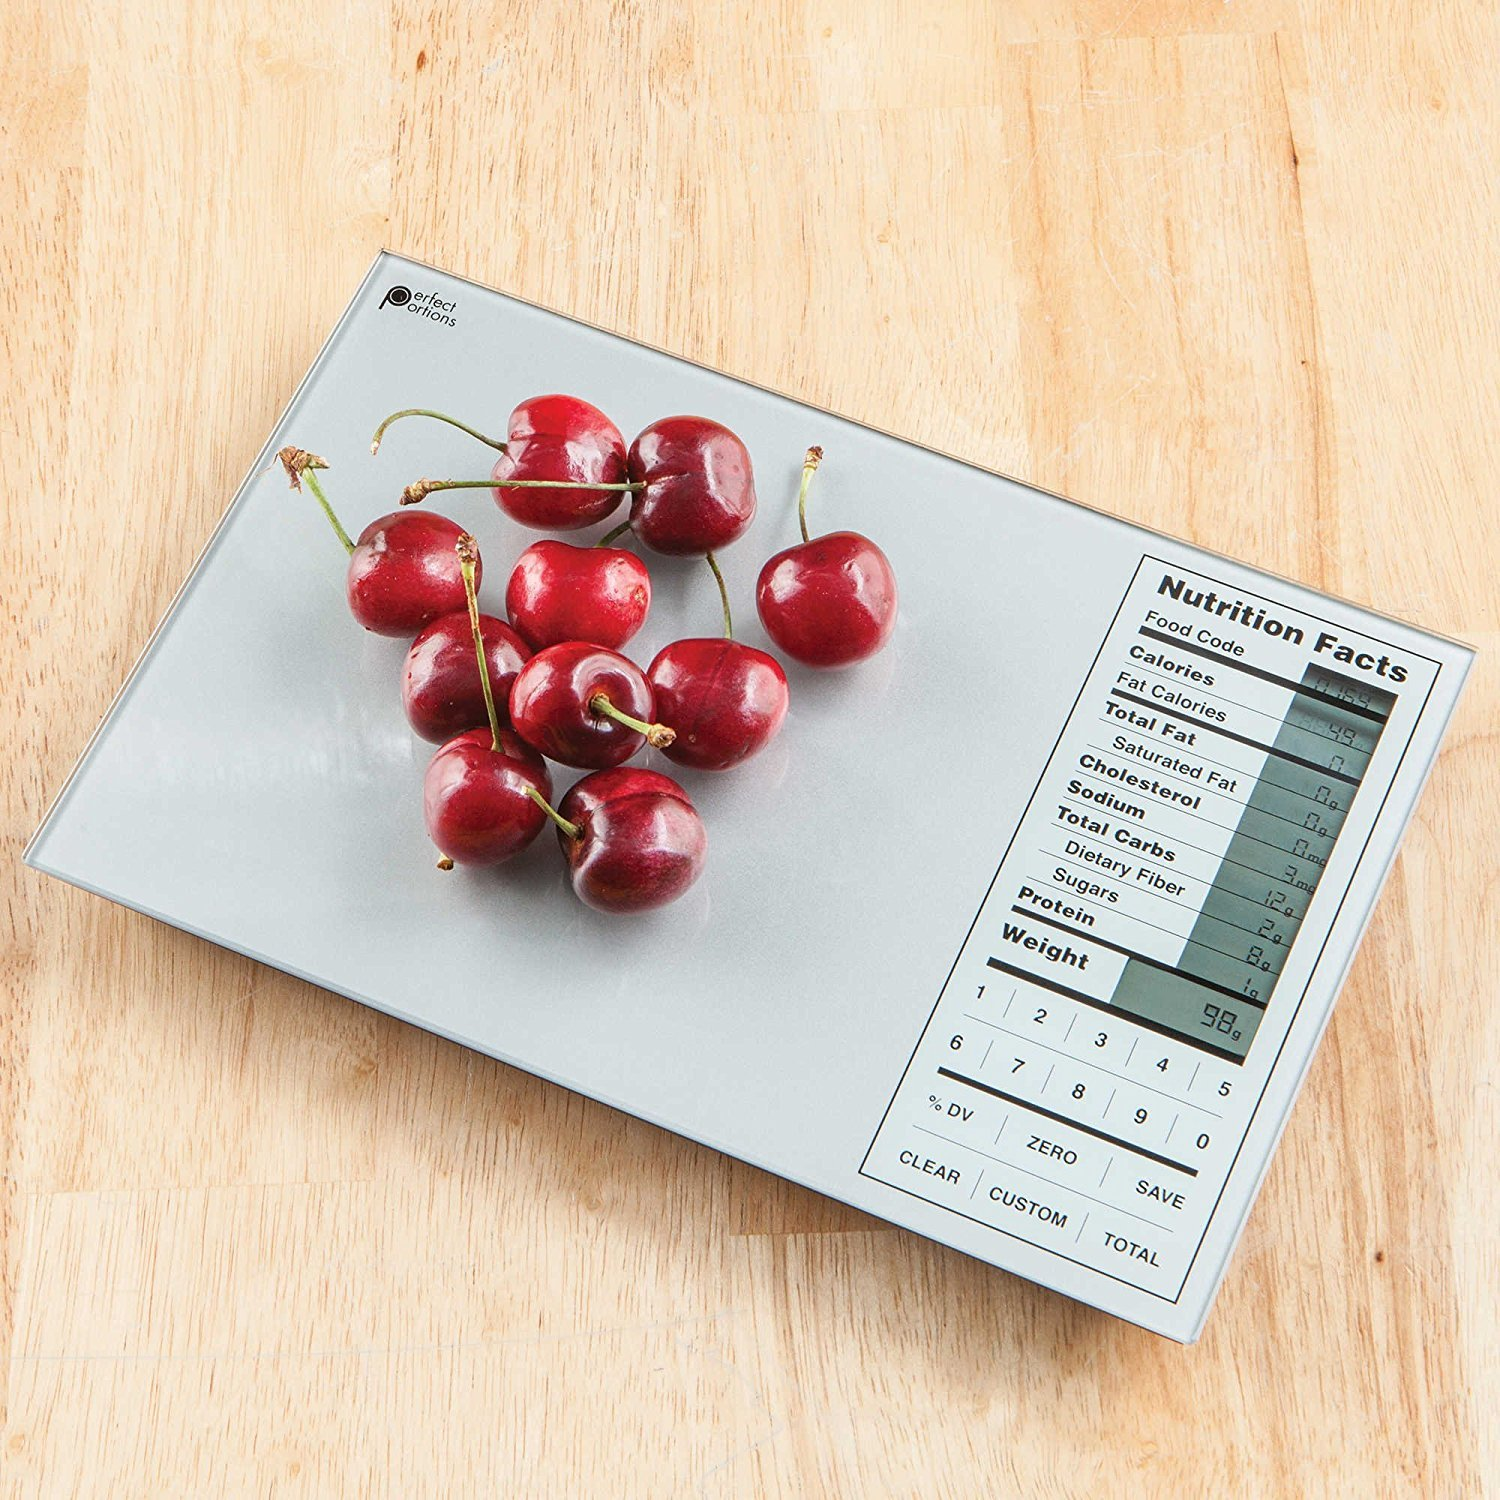 Digital Personal Nutrition Food Scale Weight Loss Calories Diet Perfect Portion